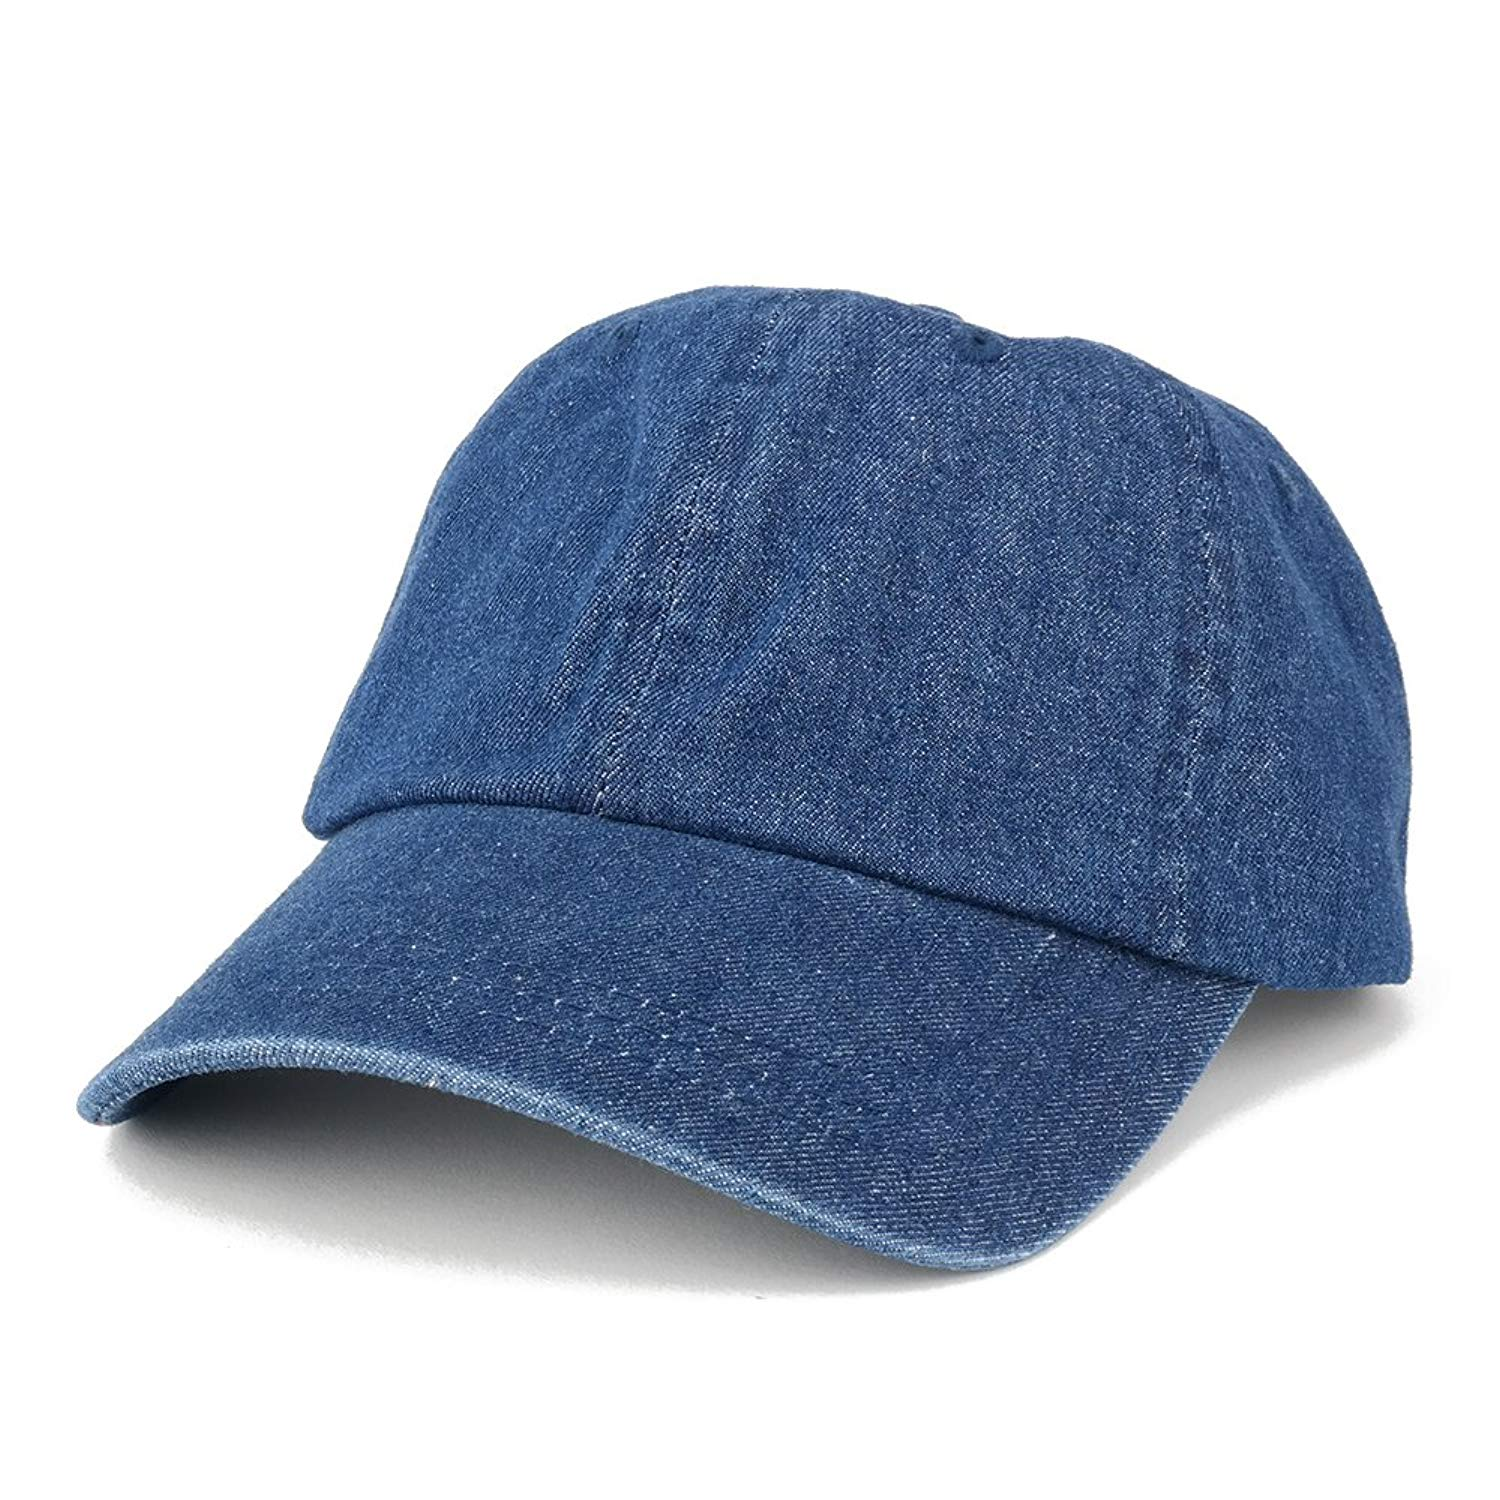 da7877fcb Cheap Washed Denim Embroidery Baseball Cap, find Washed Denim ...